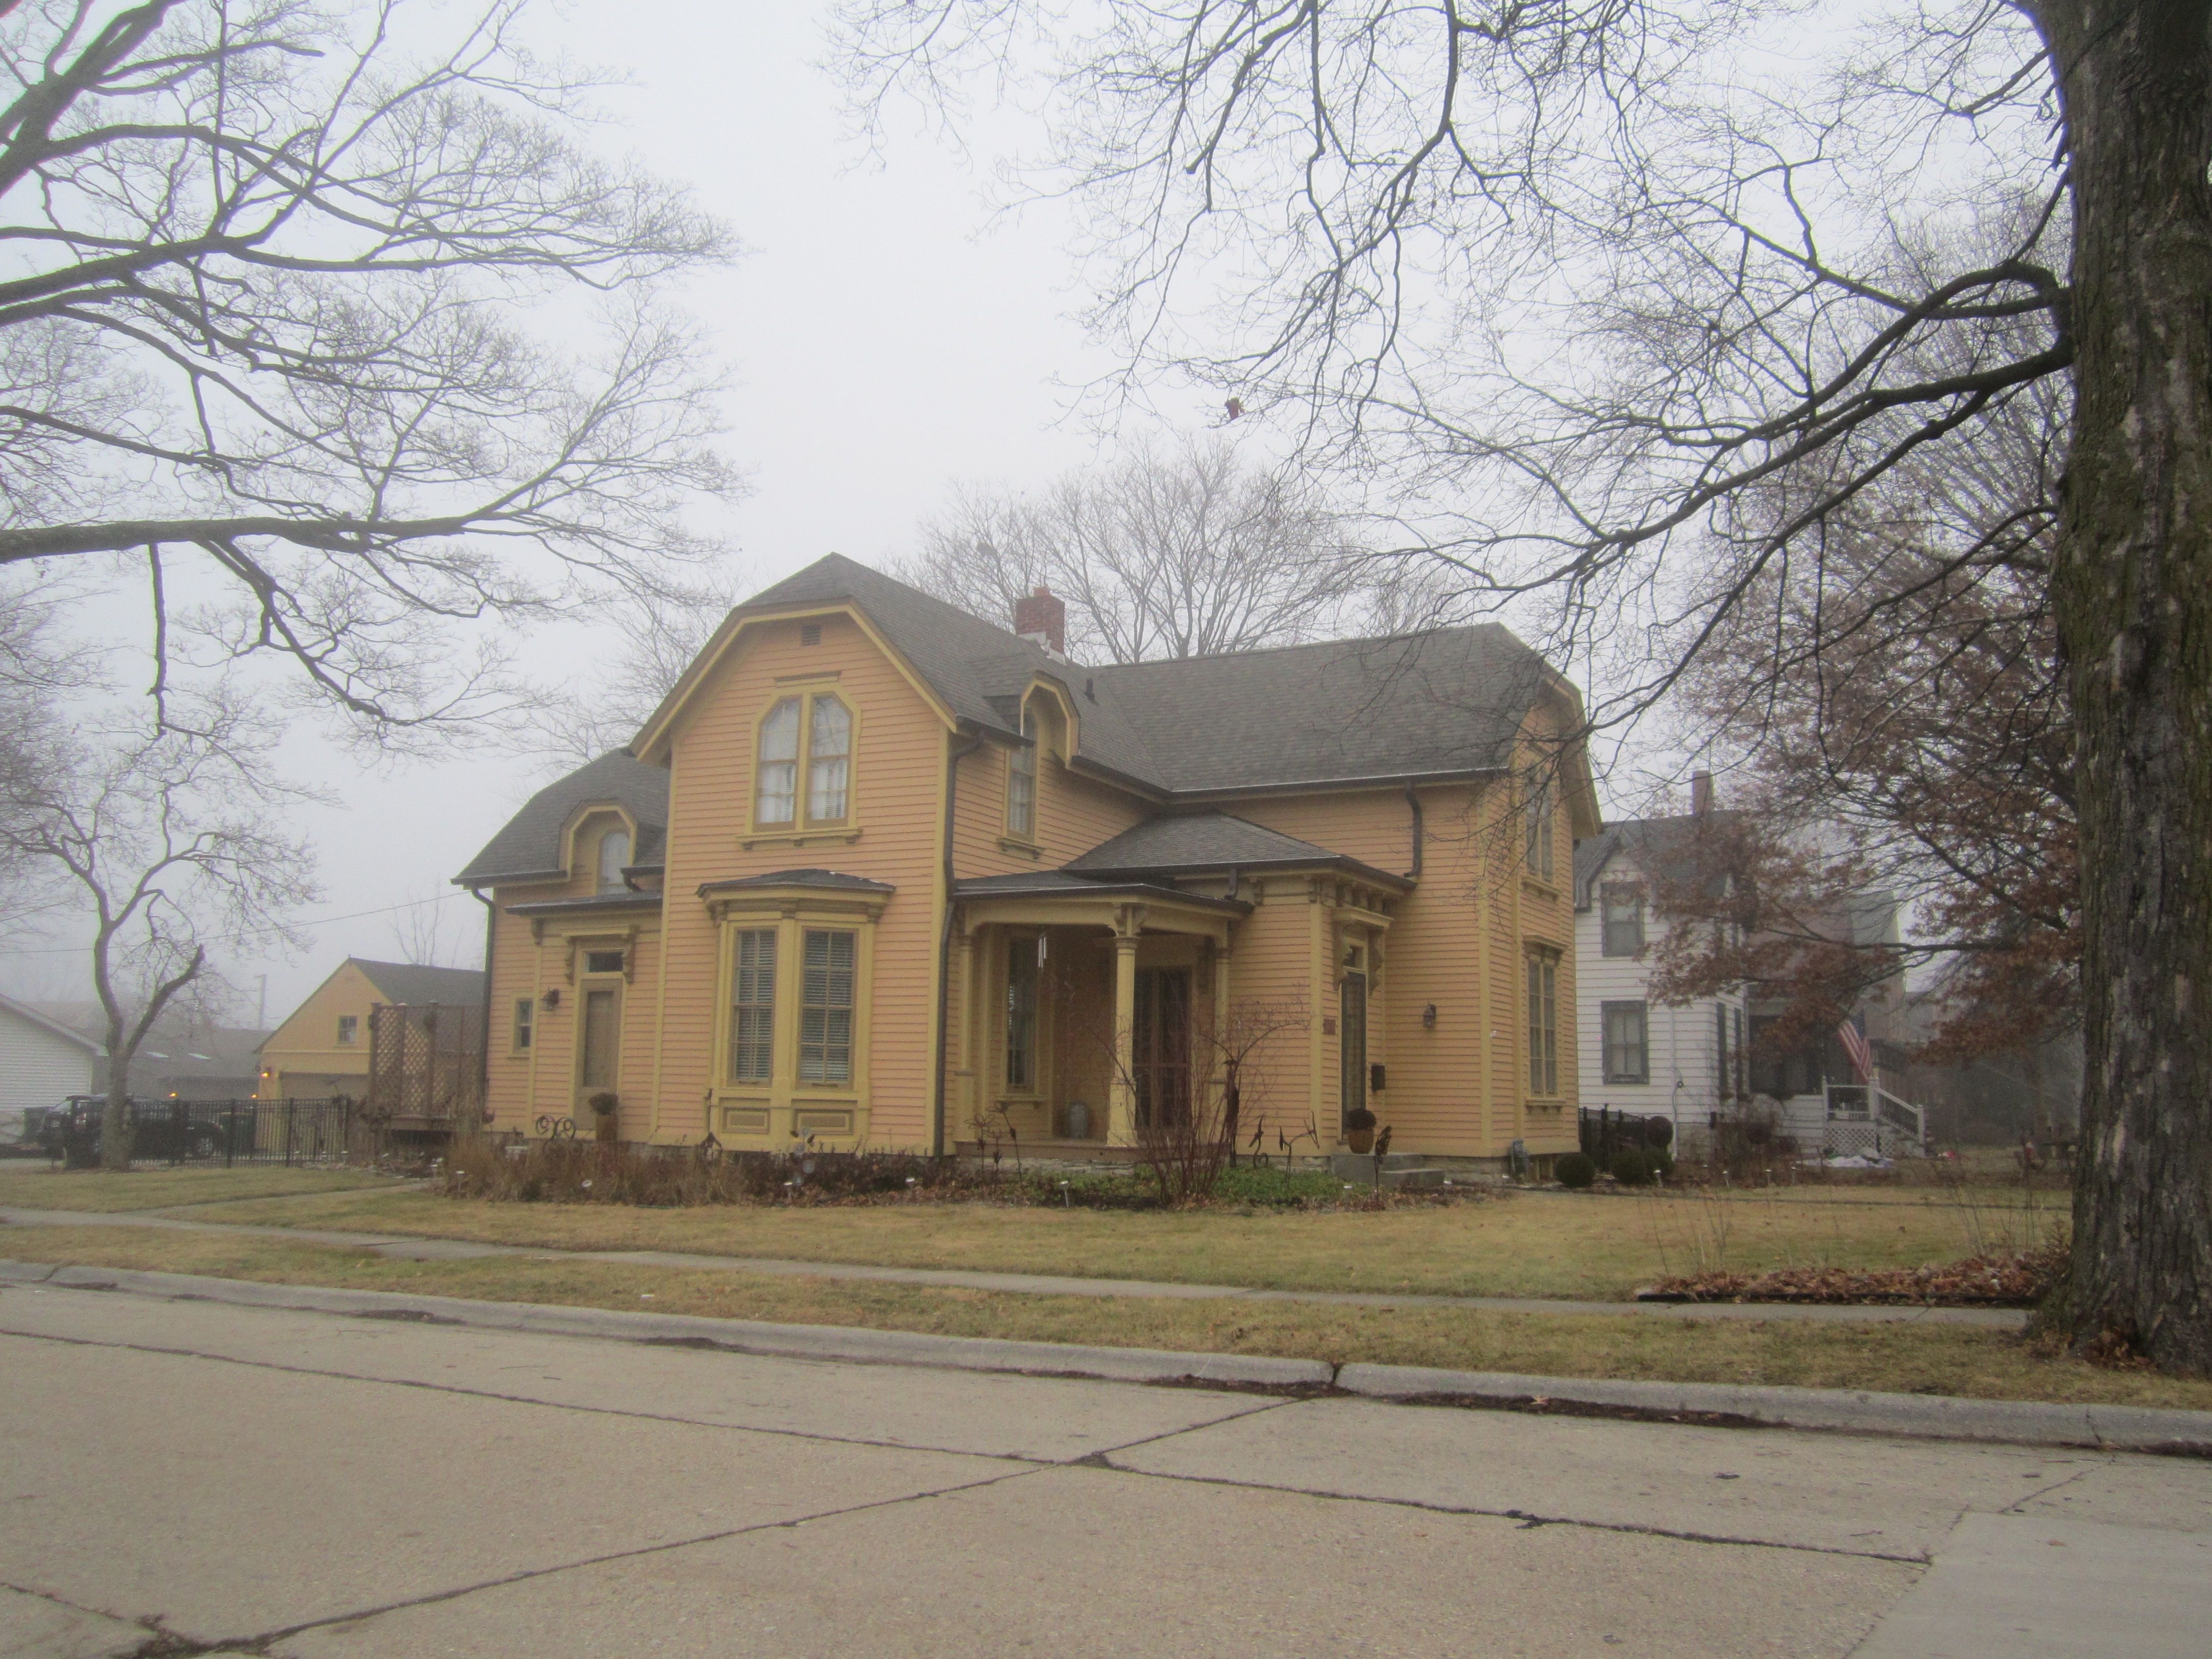 The 1867 Willard House Features The Distinctive Jerkin Roof Basically A Combination Of The Simple Gable Roof And The Hip Hip Roof Gable Roof Sycamore Illinois